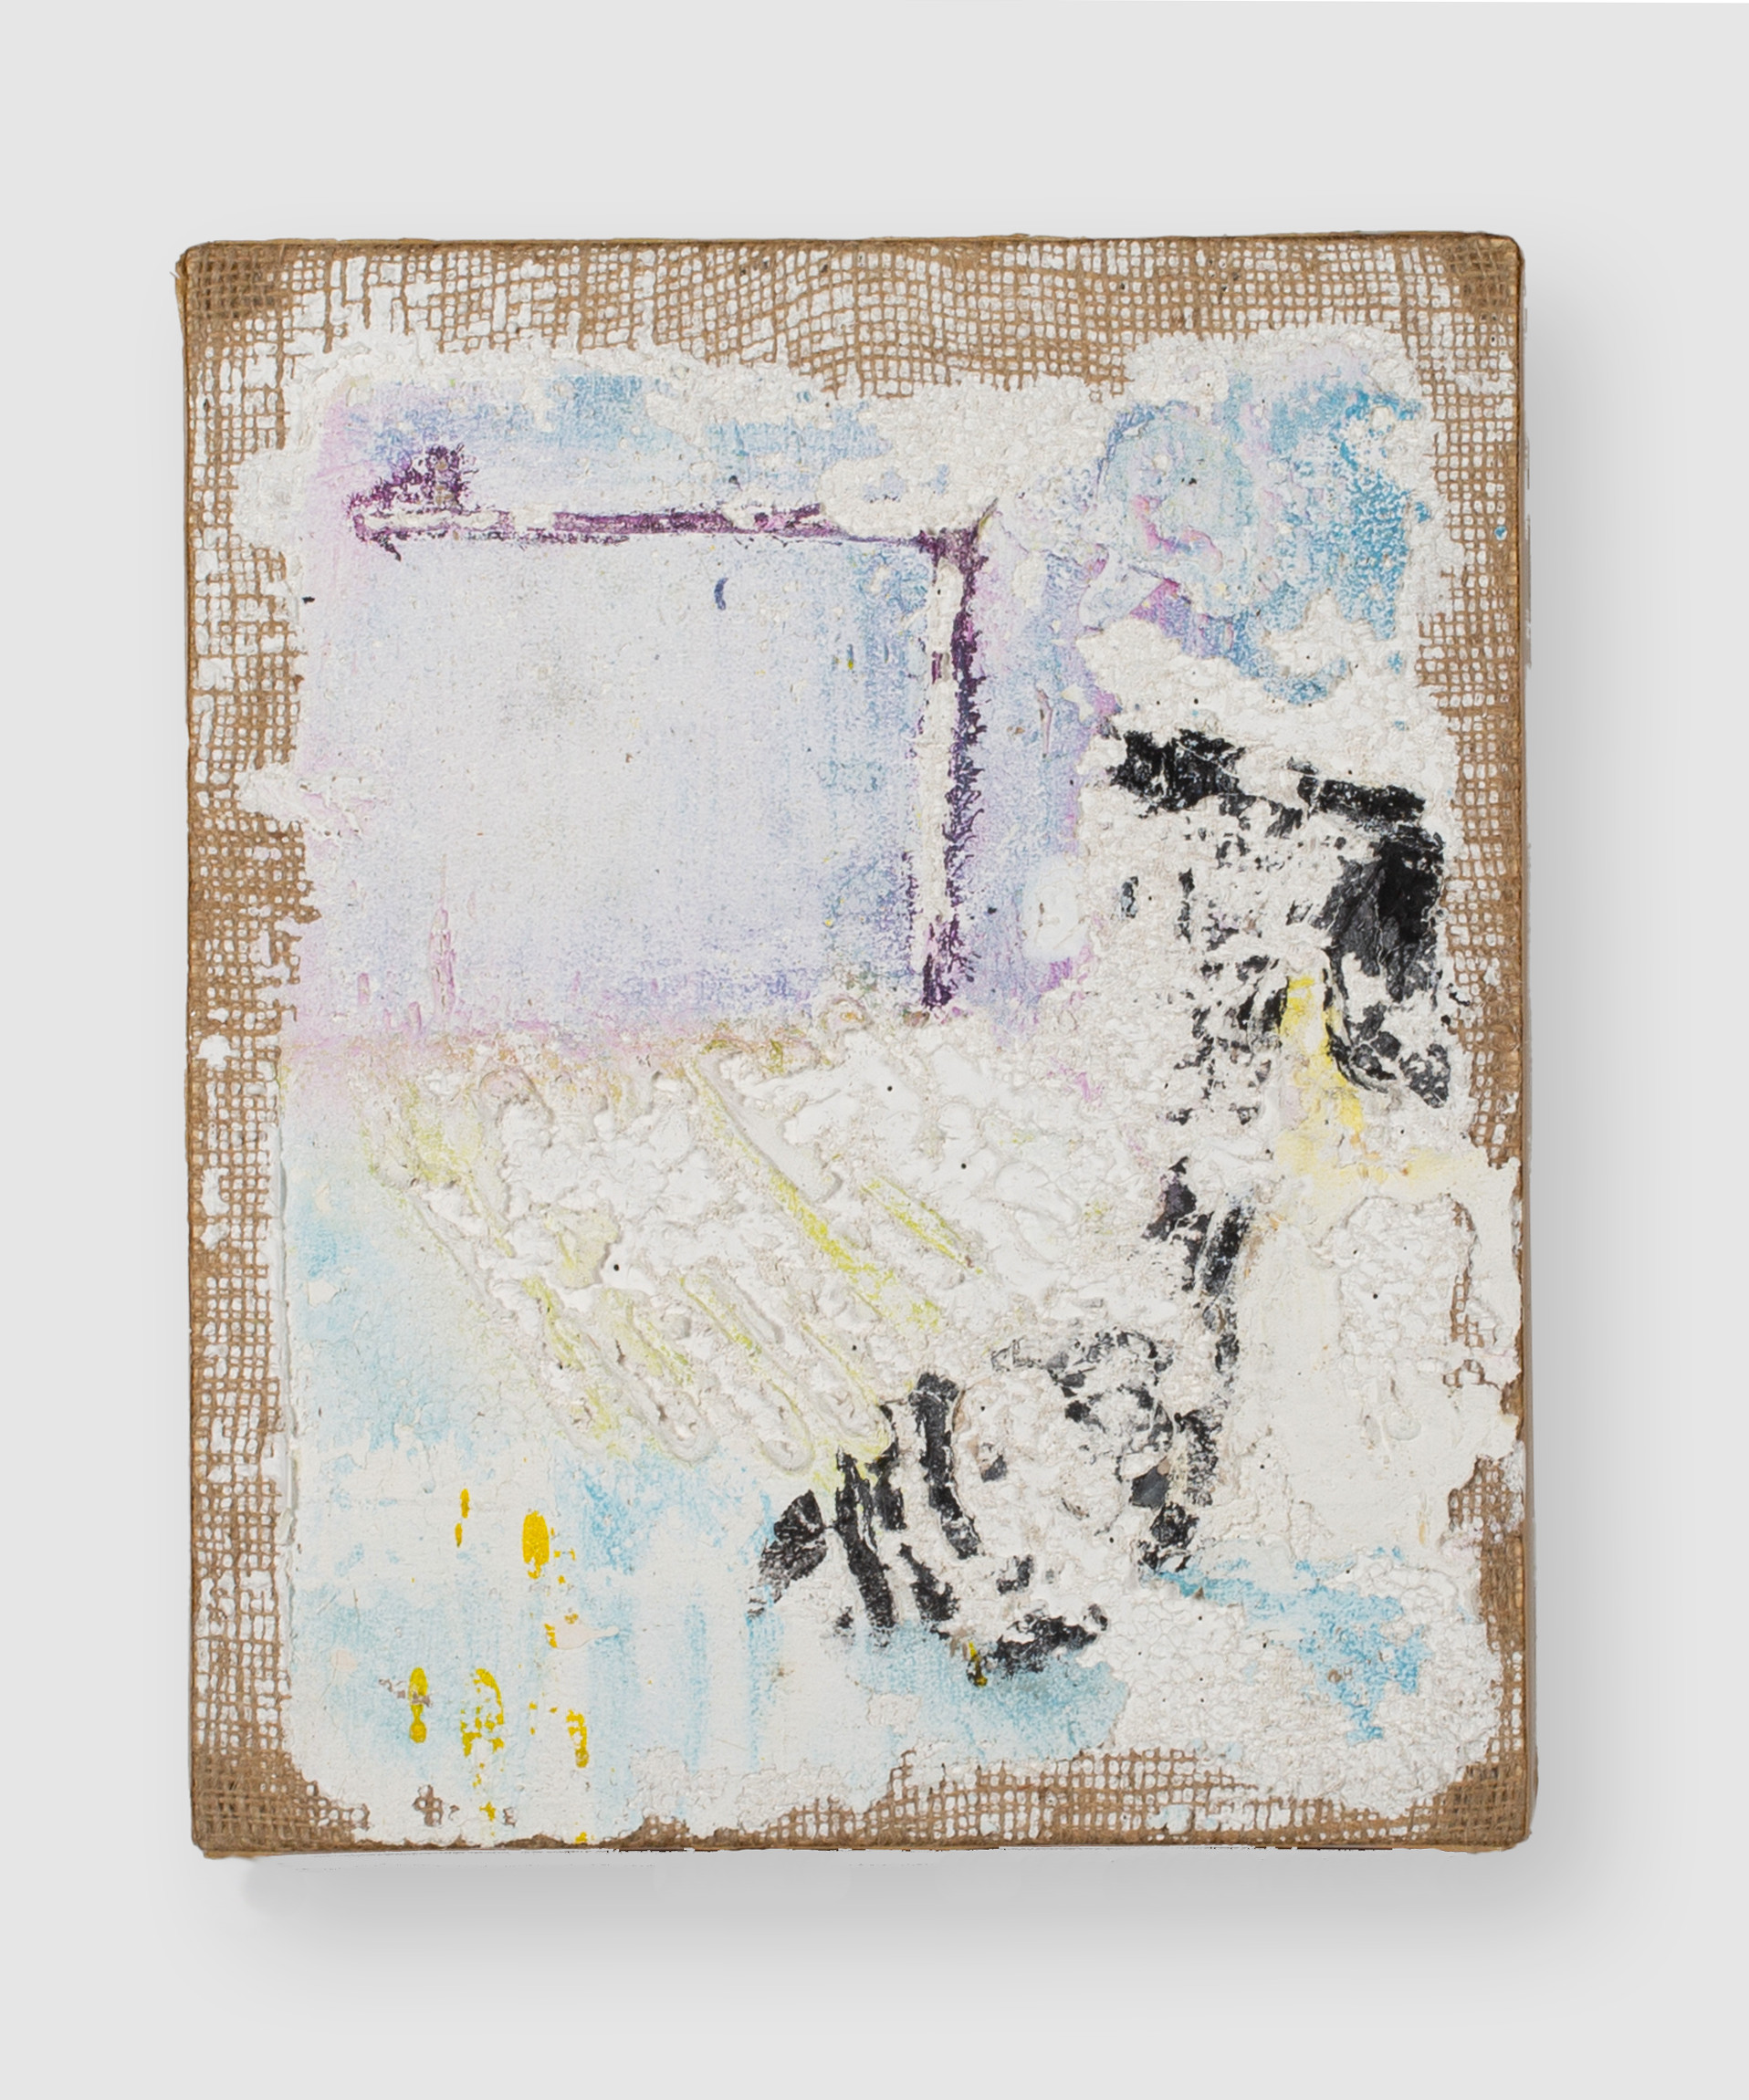 Loci II (Memory Room with Ghost), 2021, oil, acrylic, gesso and marble dust on burlap, 12 x 10 inches (30.48 x 25.4 cm)